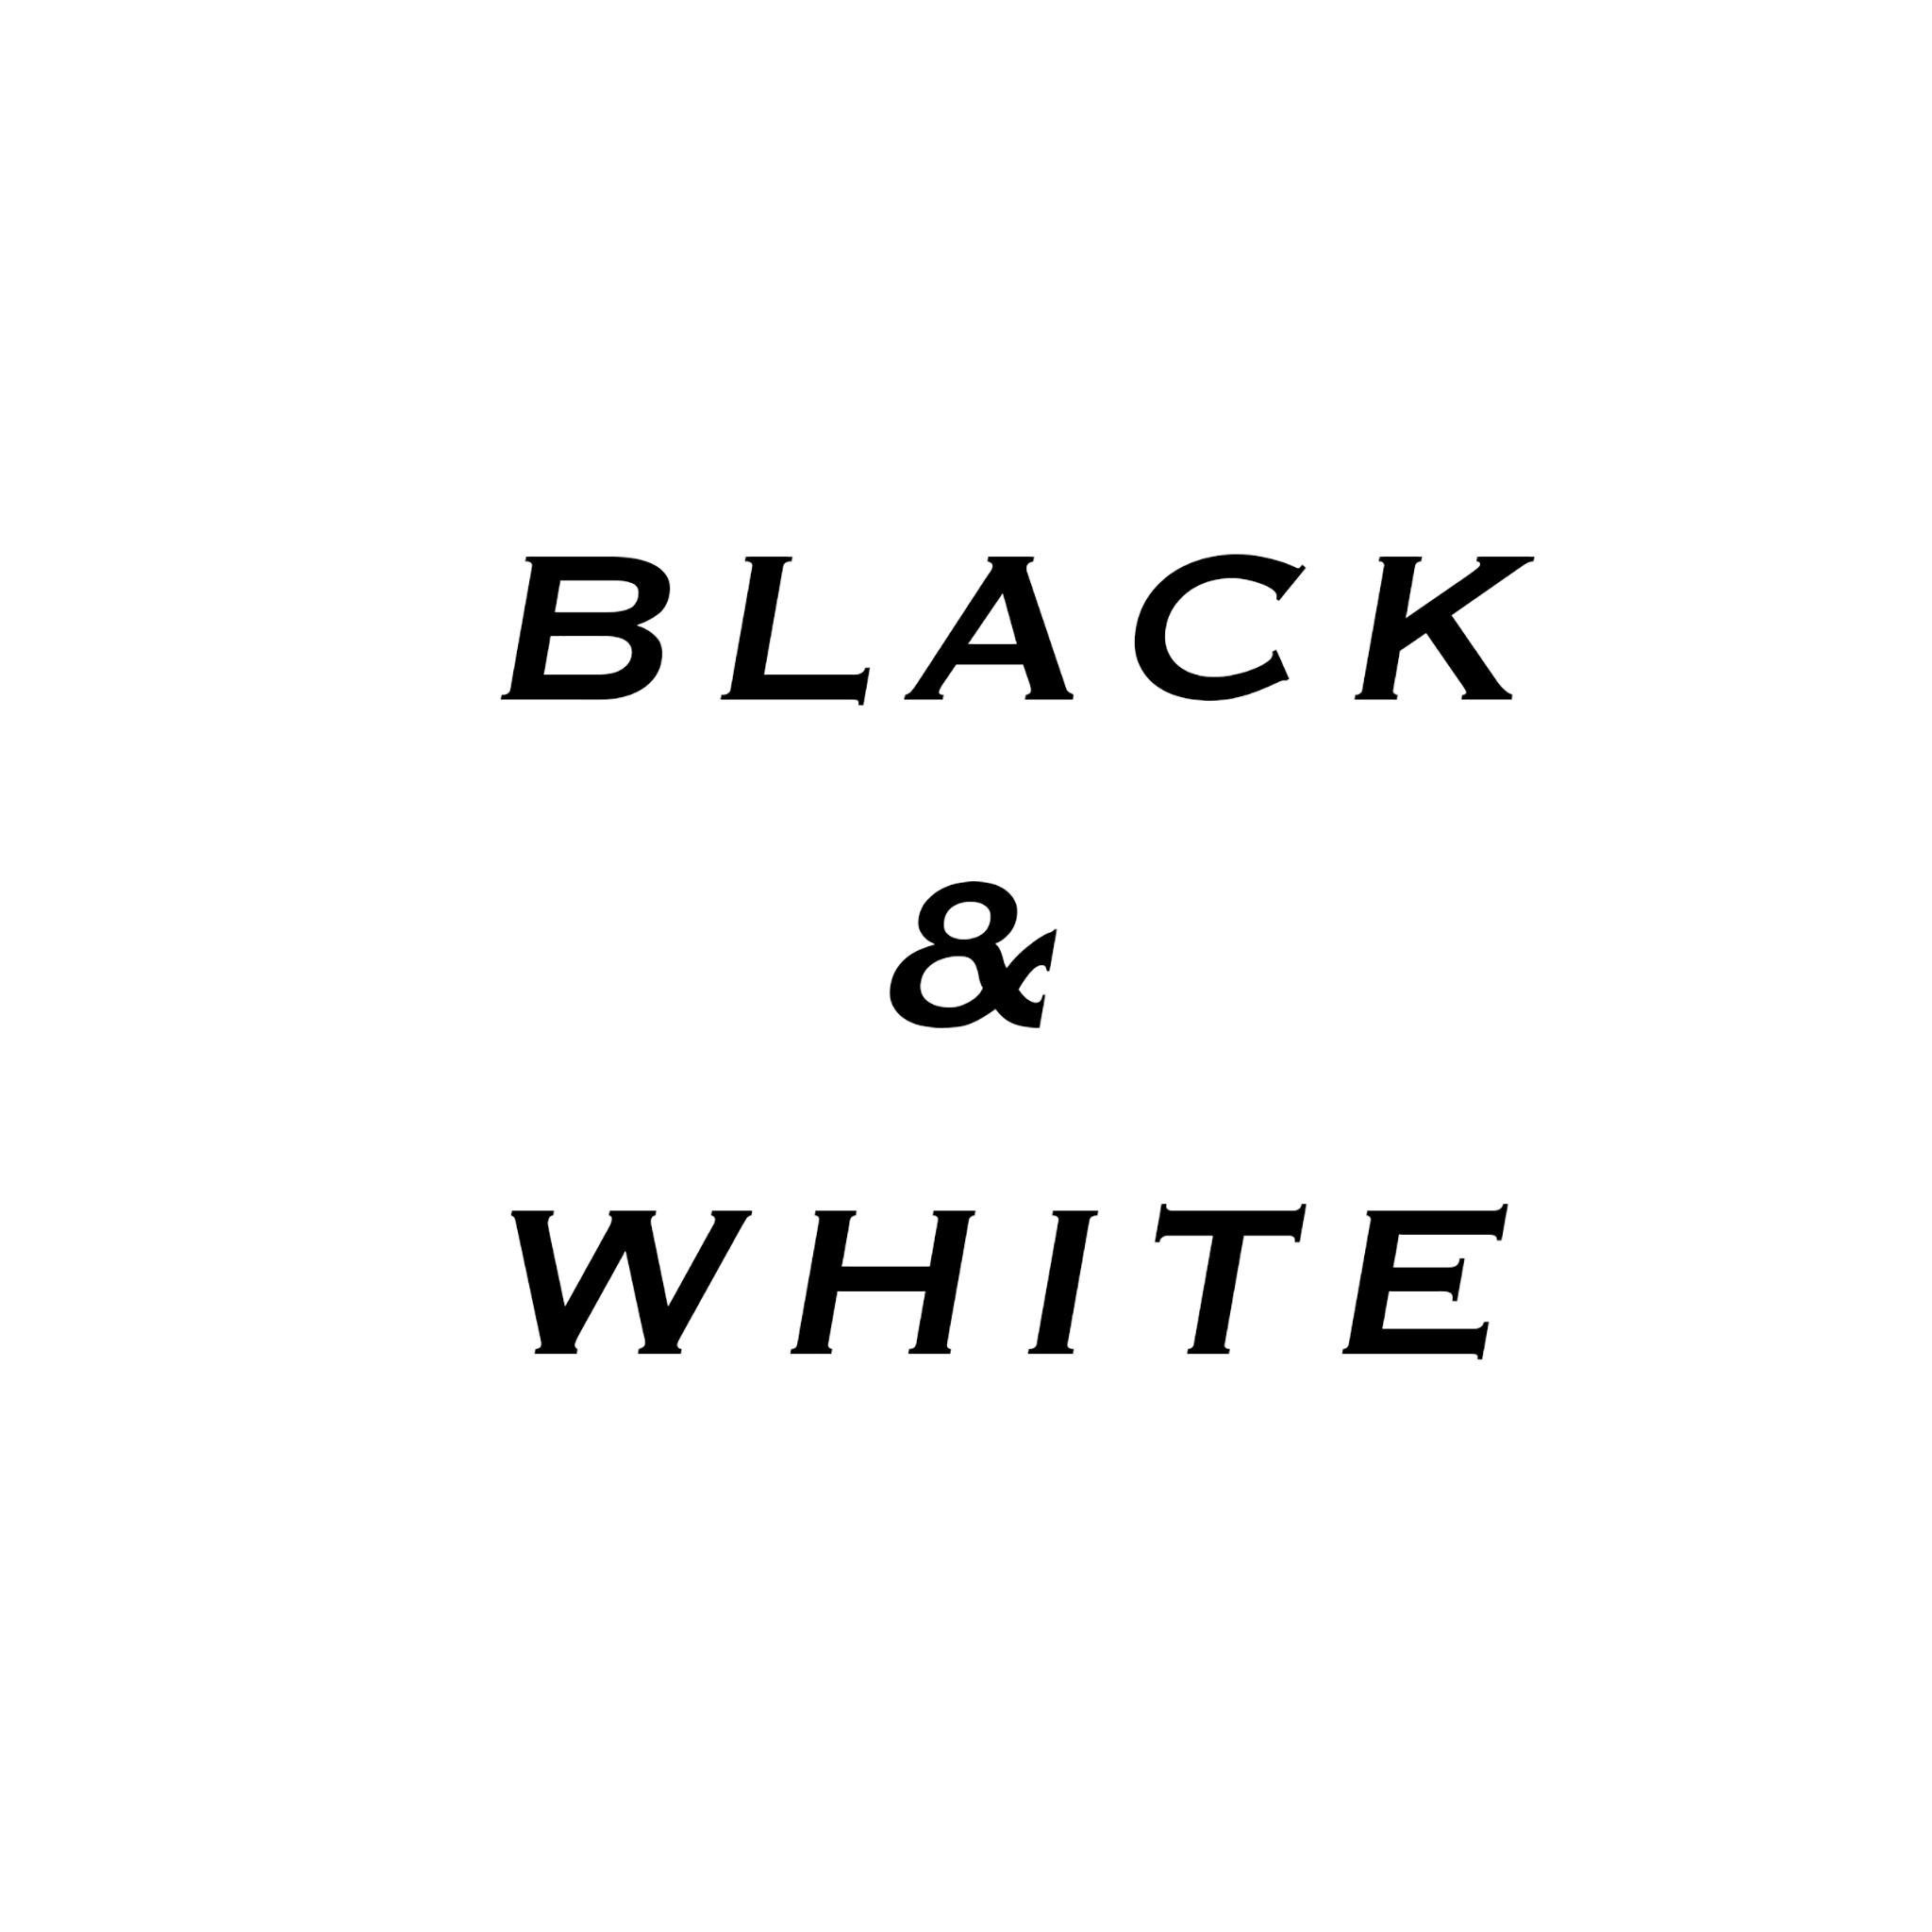 Black and White Images